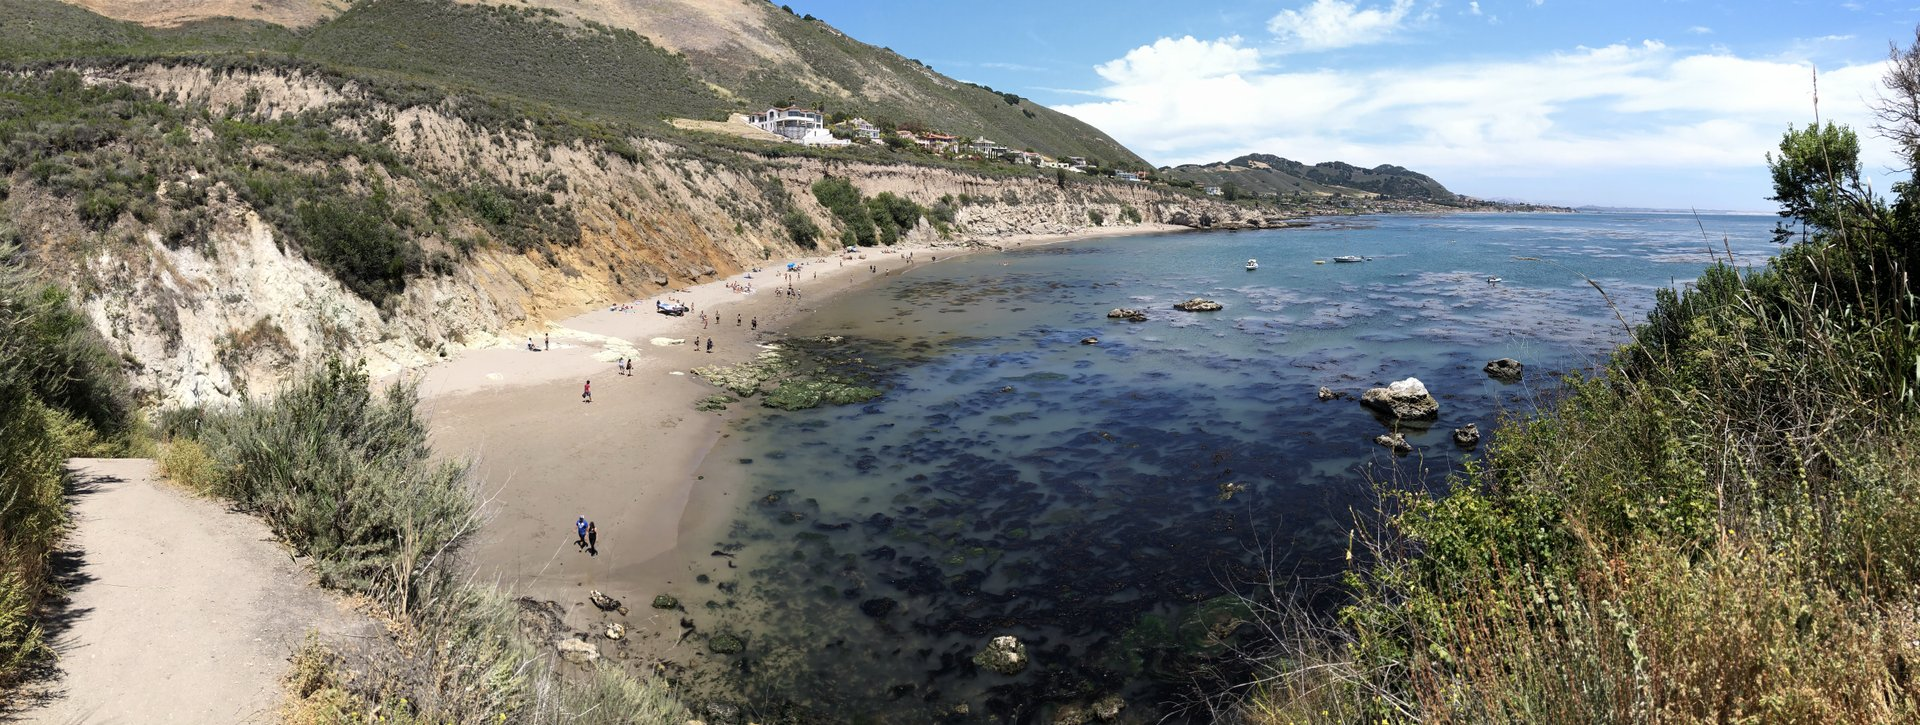 Uncrowded cove on a sunny day.